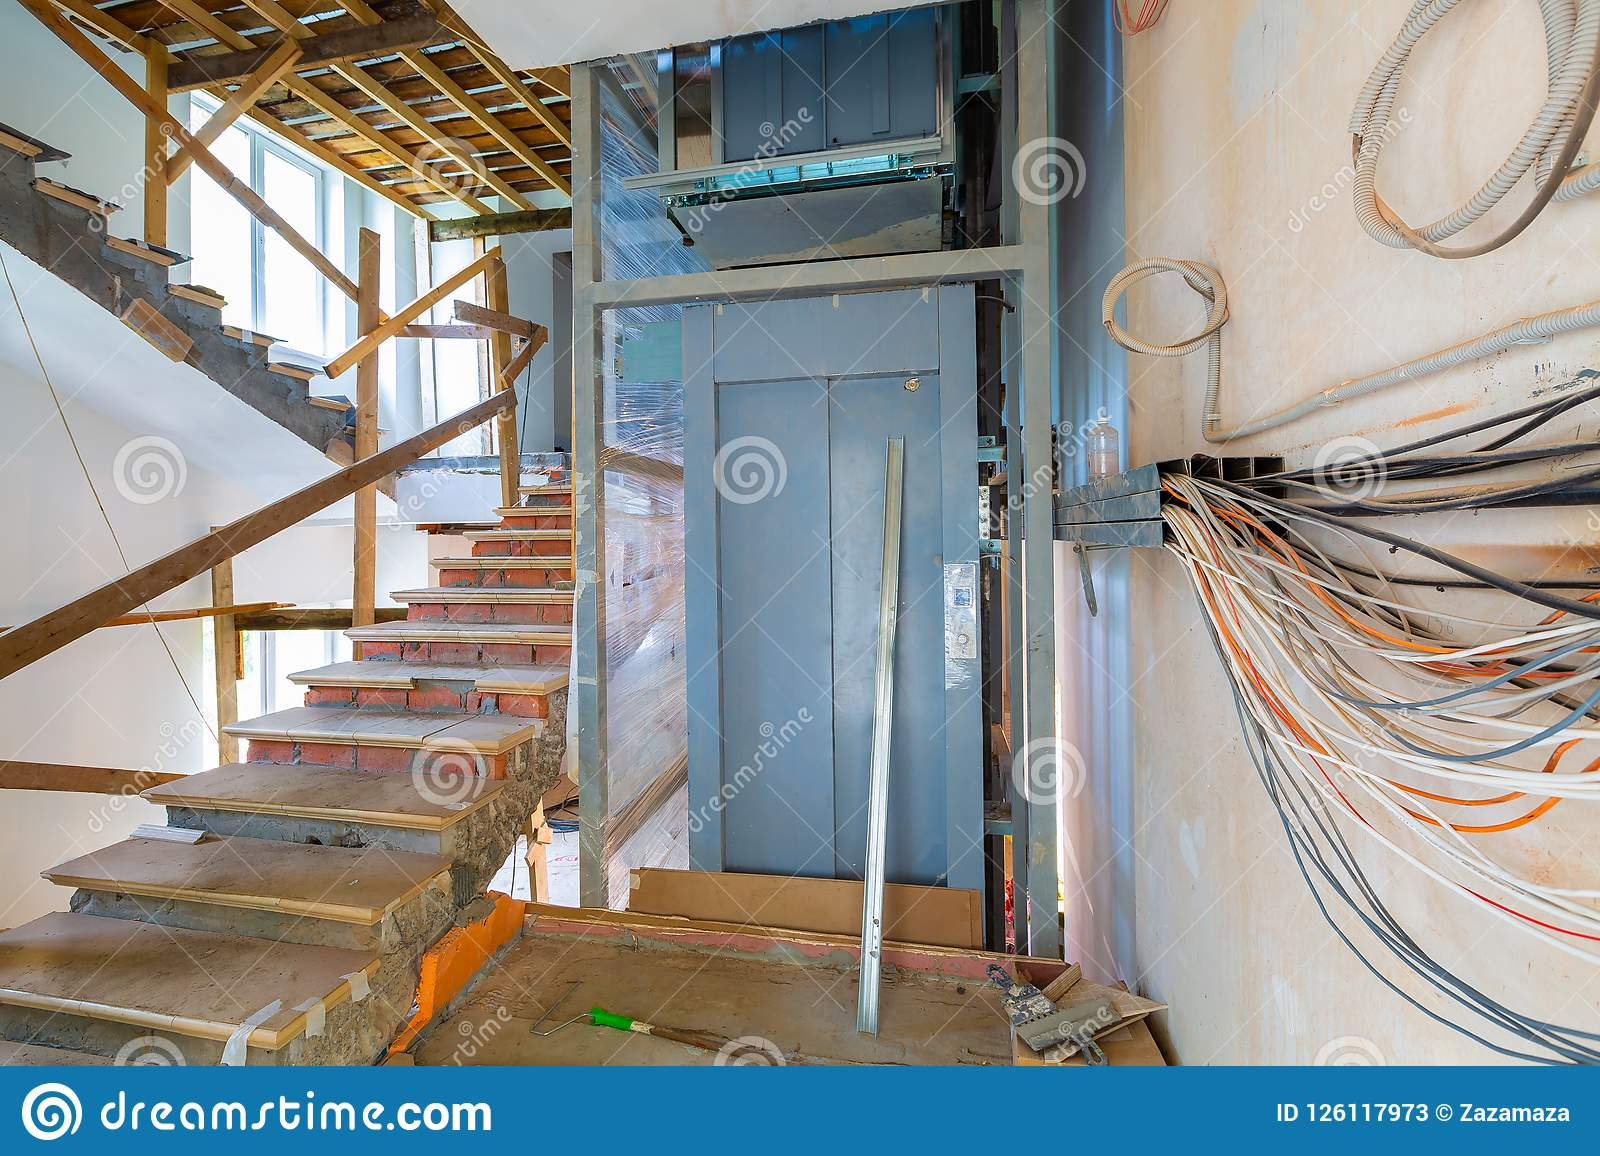 Wall With Wires, Stairs With Temporary Wooden Railing And Elevator